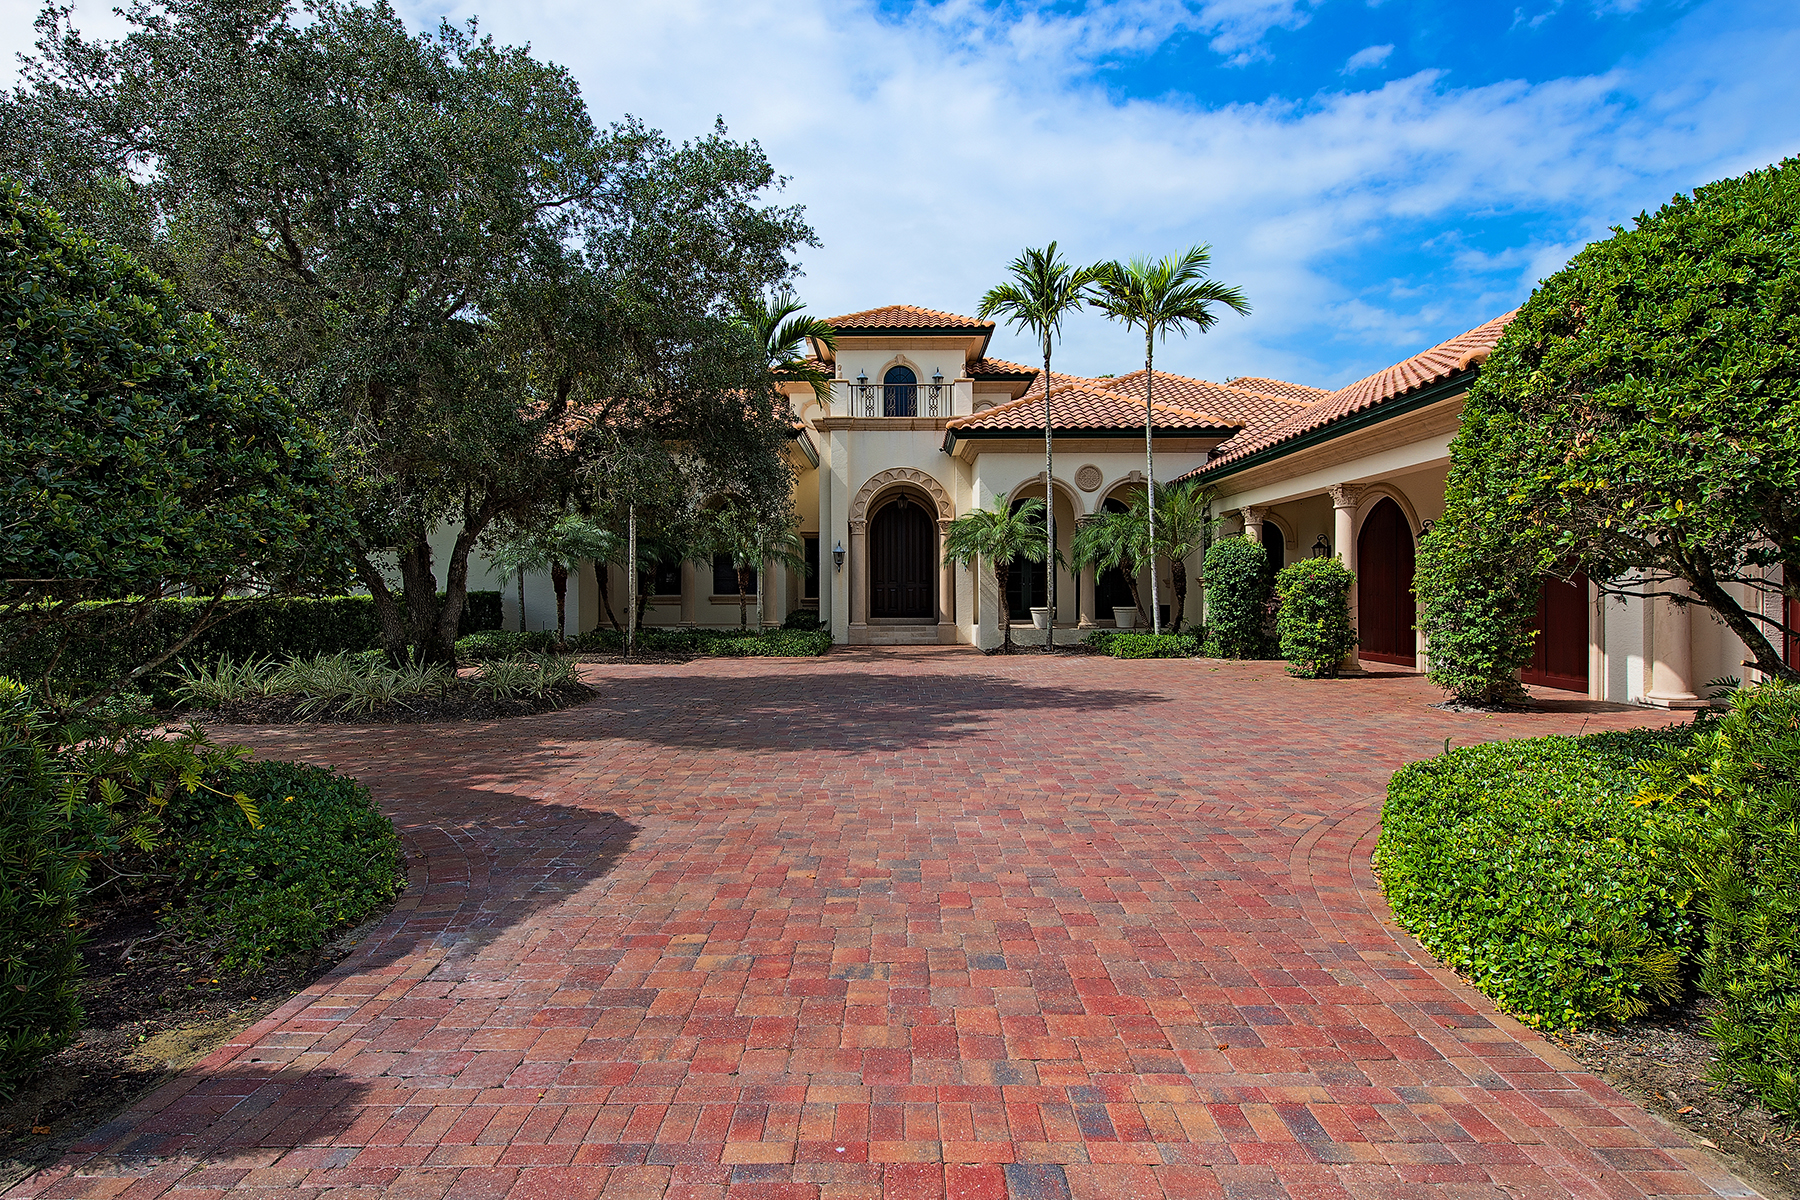 Casa Unifamiliar por un Venta en GREY OAKS - ESTATES AT GREY OAKS 2817 Thistle Way Naples, Florida, 34105 Estados Unidos